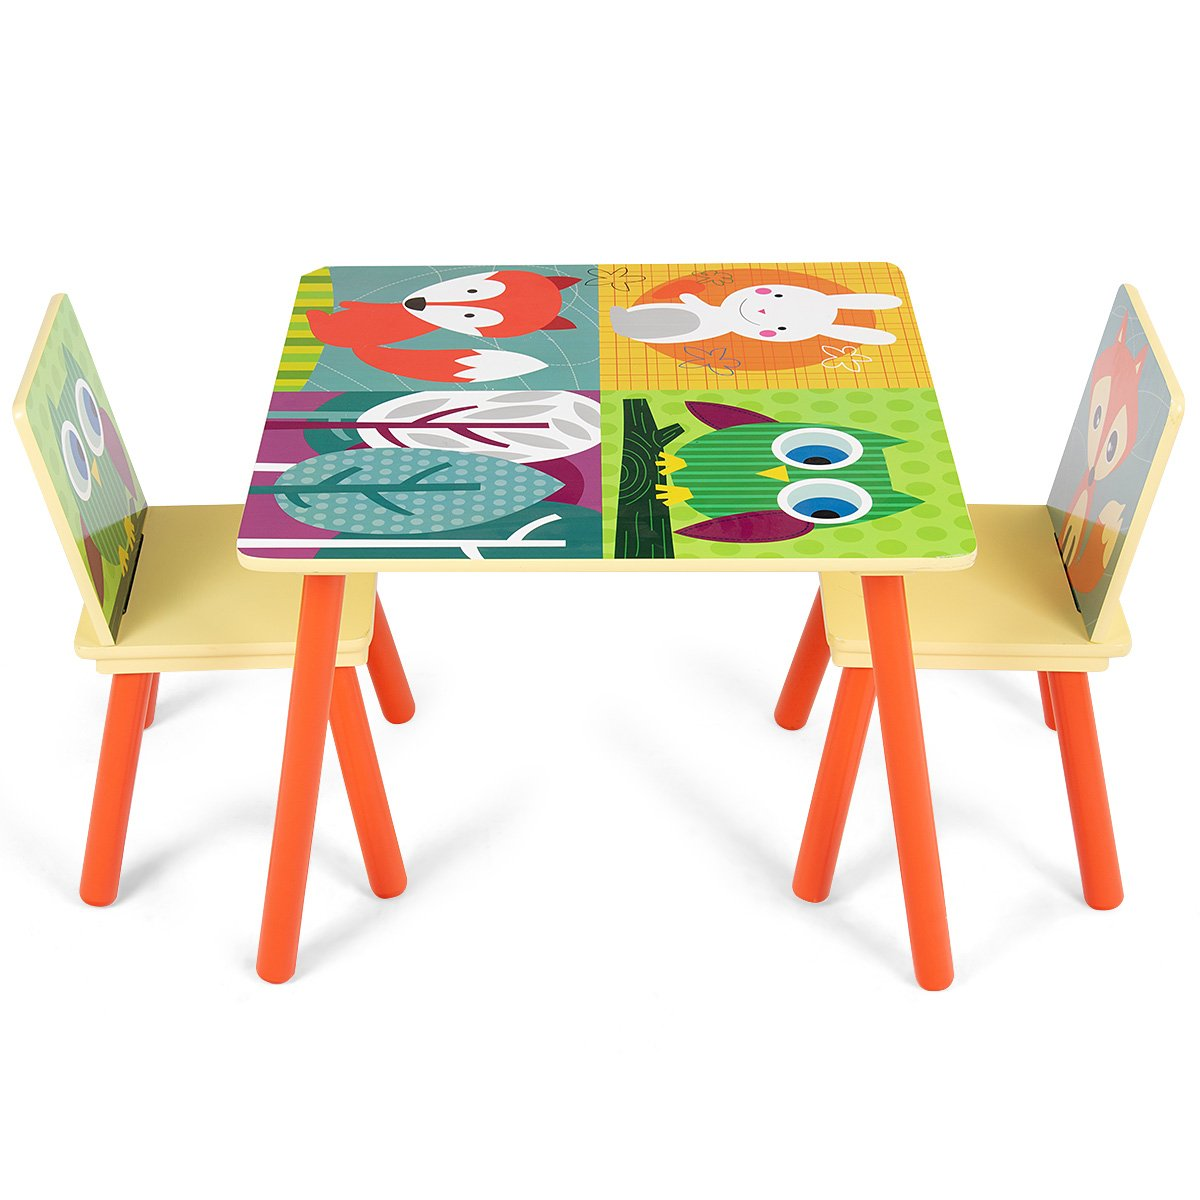 CASART Kids Furniture Set with Multifunction Table + 2 Chairs, Harmless P2 MDF Material, Colorful Cartoon Animal Pattern, Smooth Surface, Round Corners for Reading, Eating, Playing, Writing